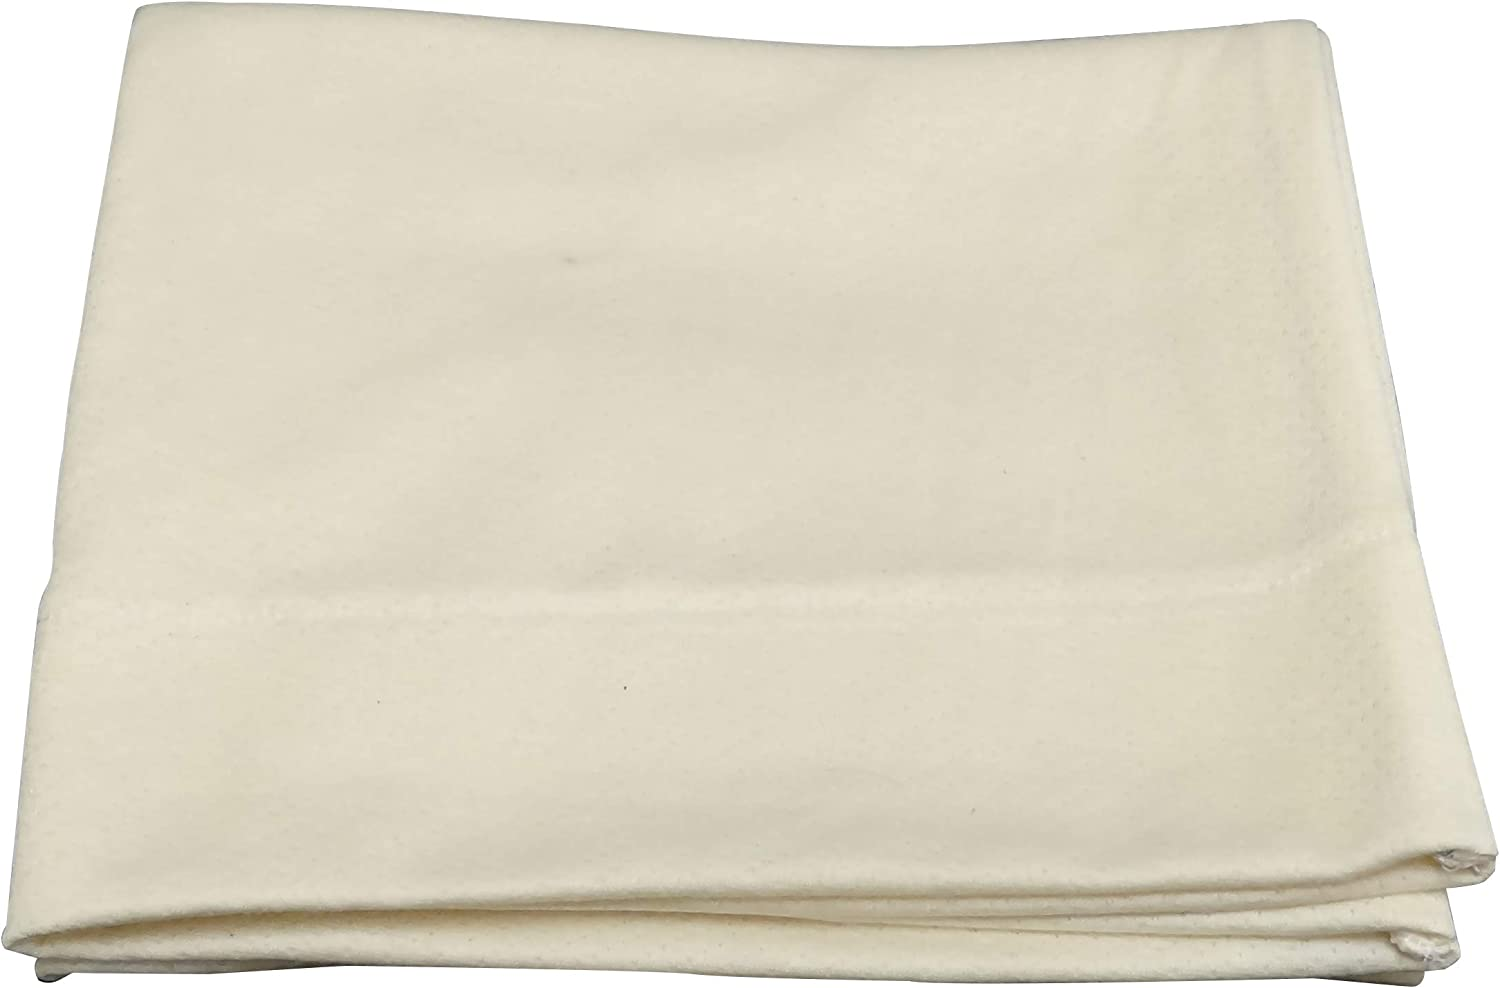 Organic Cotton Pillow Case by Max Max 72% OFF 84% OFF Kool-Flow Breathab - Snuggle-Pedic